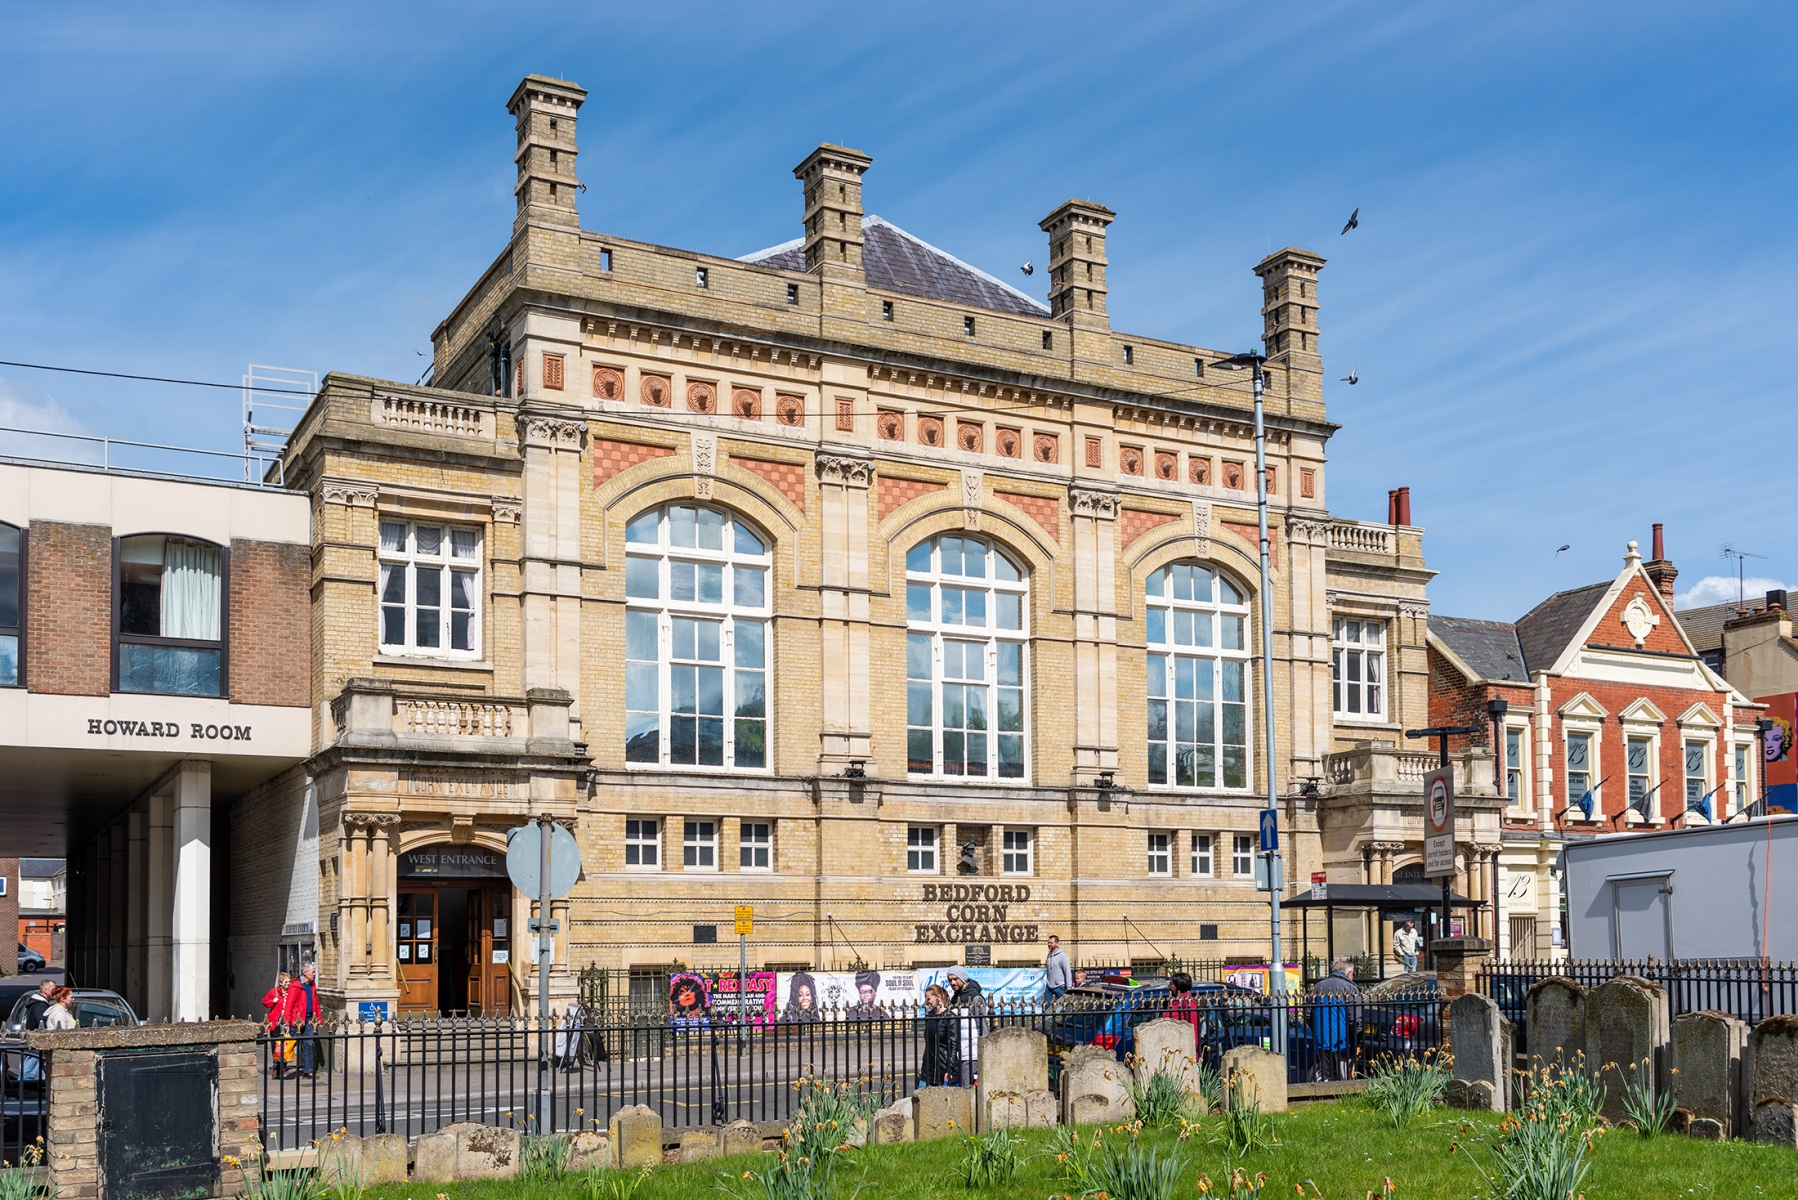 Bedford Corn Exchange, St Paul's Square